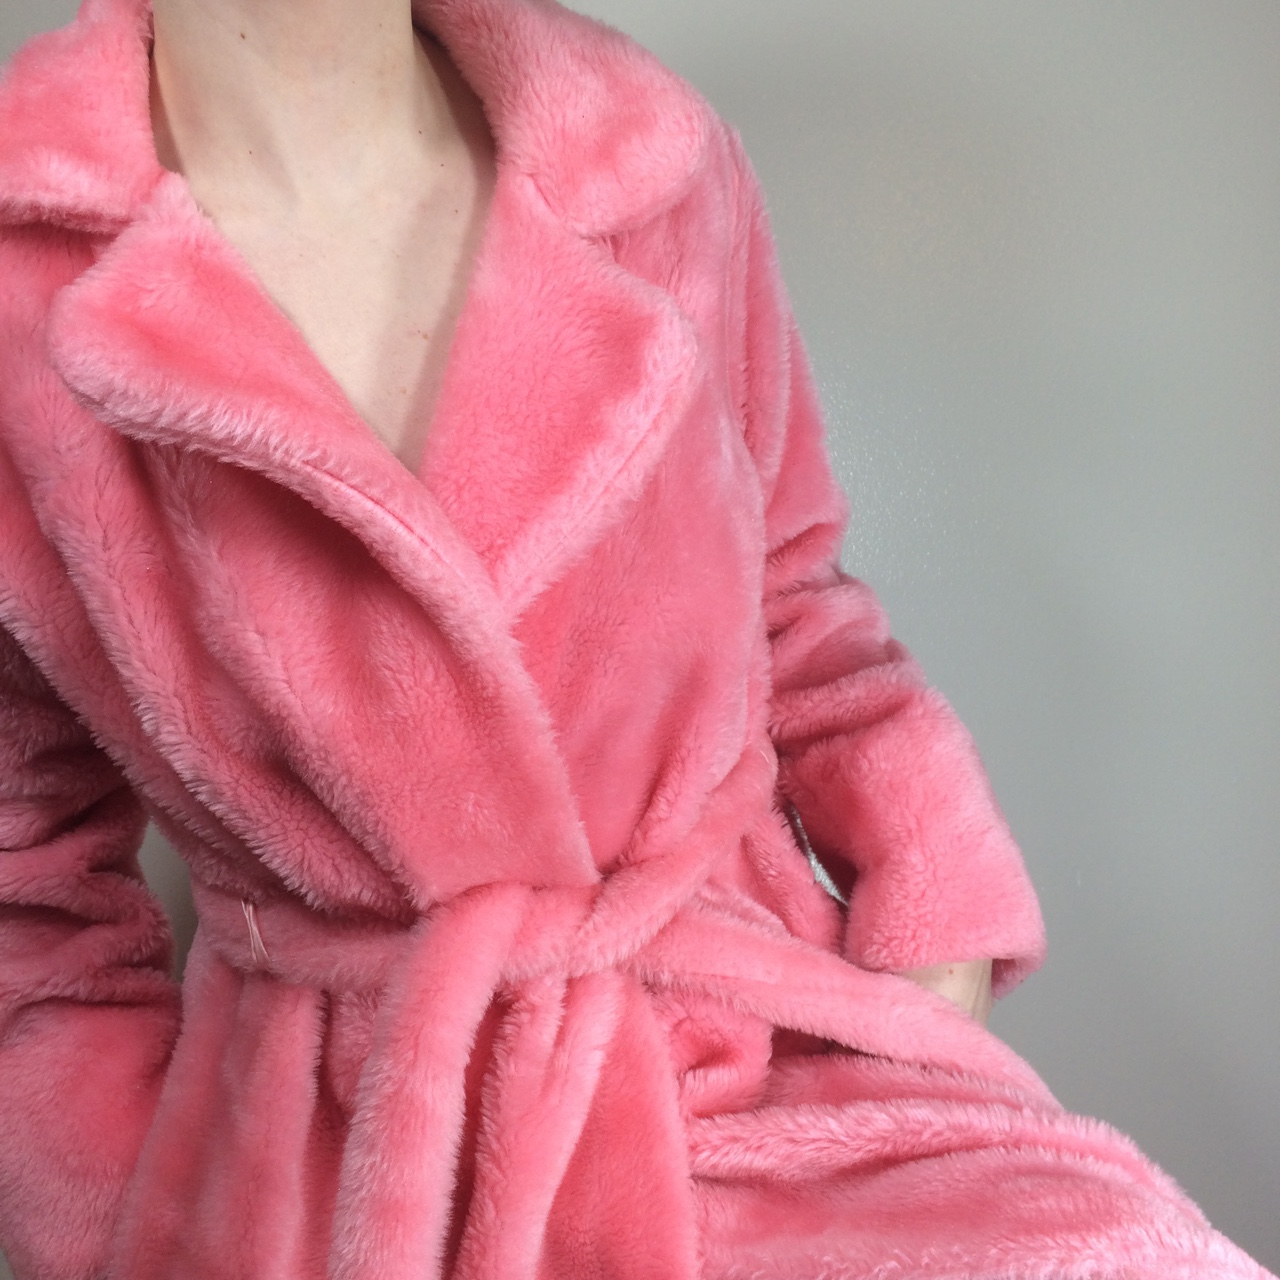 Vintage Pink Fuzzy Pile Robe With Matching Belt Depop